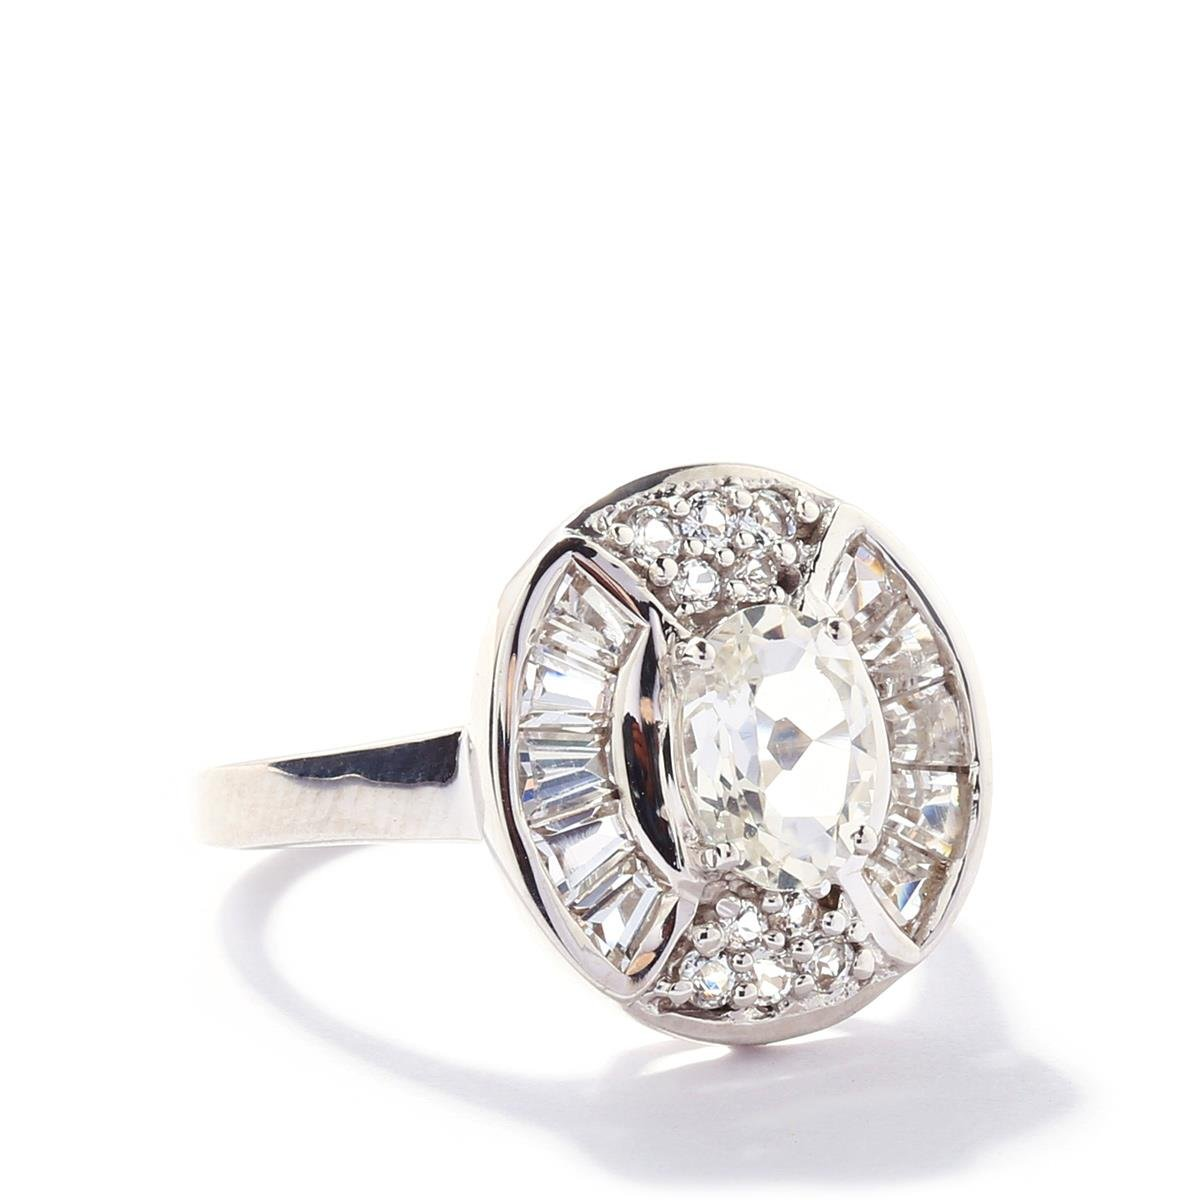 ring women rose split c main diamante engagement band blingy island rings gold wid tone river jewellery